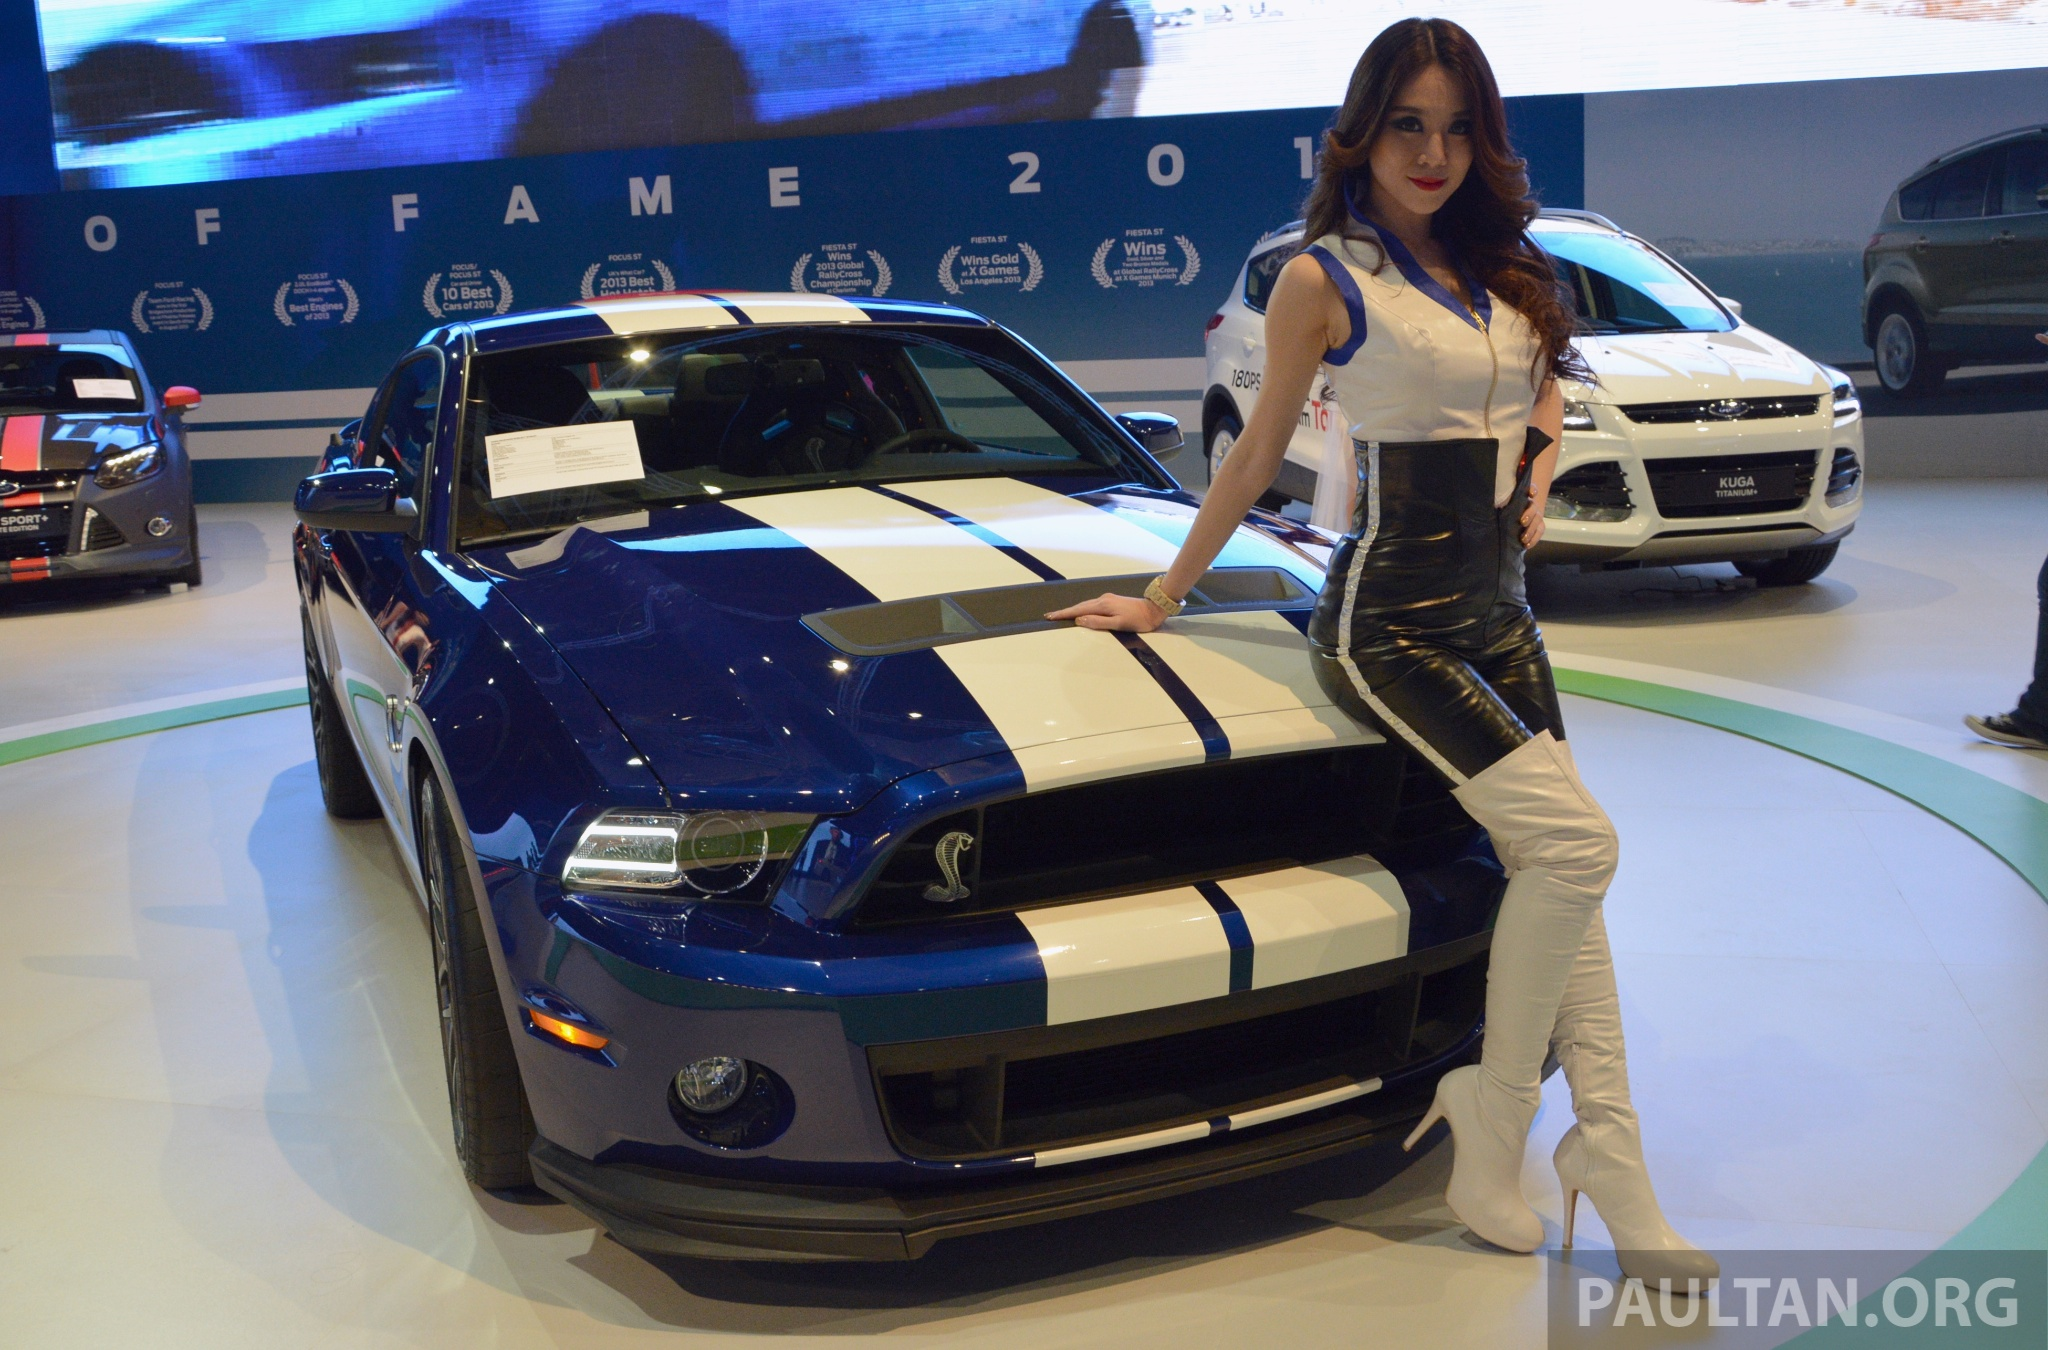 Ford mustang shelby gt500 shown at klims13 image 210692